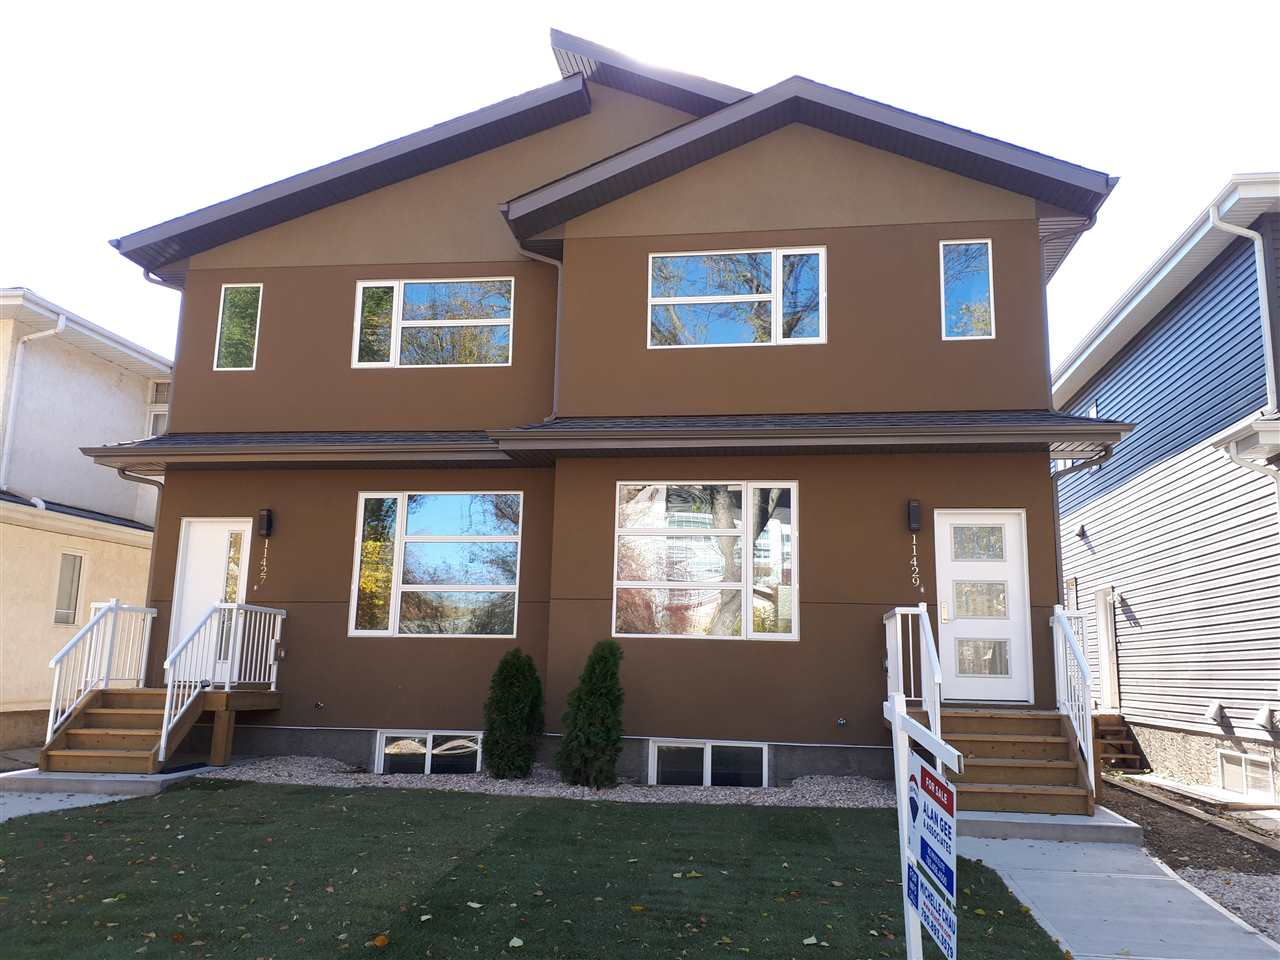 "Convenience at your doorstep! Steps from University Ave, UofA campus & McKernan/Belgravia station. Brand new, over 2000sqft of total living space on 3 levels w/double garage. 5 Bedrooms & 3.5 bathrooms. Acrylic stucco, engineered hardwood, porcelain tile, glass railings, modern gas fireplace, 8' doors on main & neutral tones throughout. Open layout w/spacious versatile dual living areas & full dining. Kitchen features 42"" full height upper cabinets in European designer finish, quartz countertops (throughout) & stainless steel appliances. Power room, laundry & access to yard complete main floor. Upper level showcases master bedroom w/5 piece ensuite & walkin closet, 2 additional bedrooms & 4pc bath. Fully finished lower level is perfect for investment or extended guest stays with bedrooms 4 & 5 as well as a rec area & full 4pc bathroom. Other notables: triple glazed windows, A/C, upgraded insulation, LED light fixtures, separate entrance to basement, alarm system & front landscaping. Both units for sale."